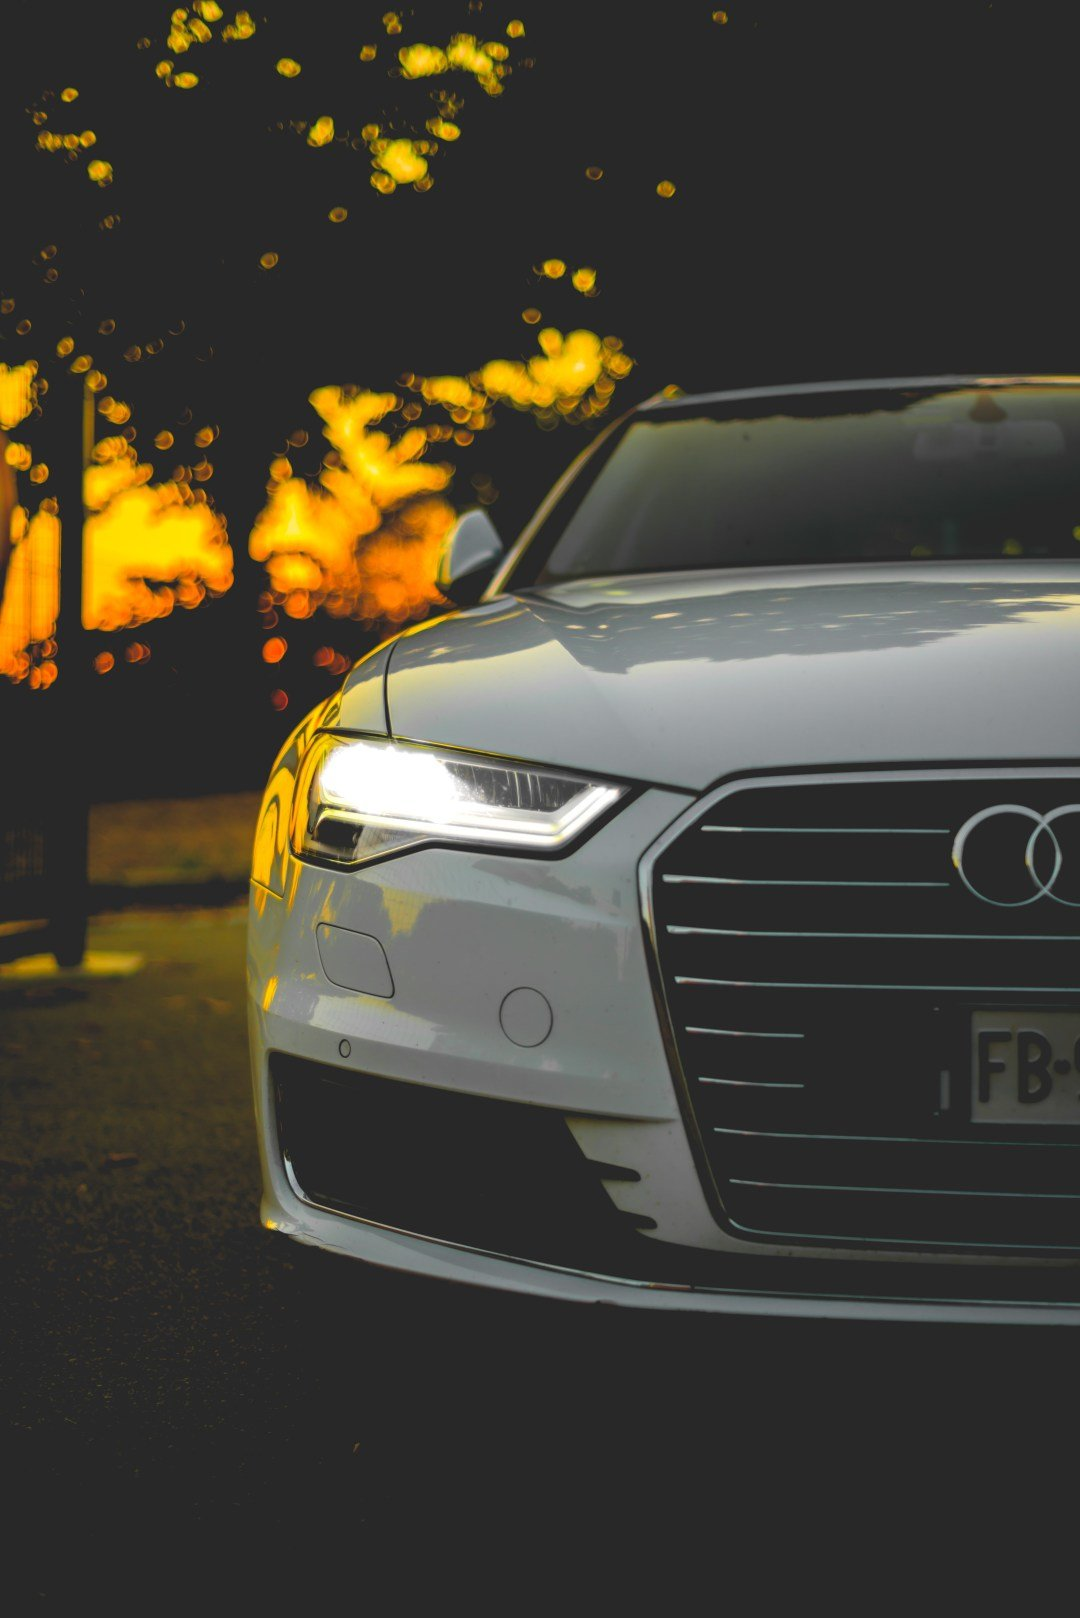 Latest Headlight Pictures Download Free Images On Unsplash Free Download